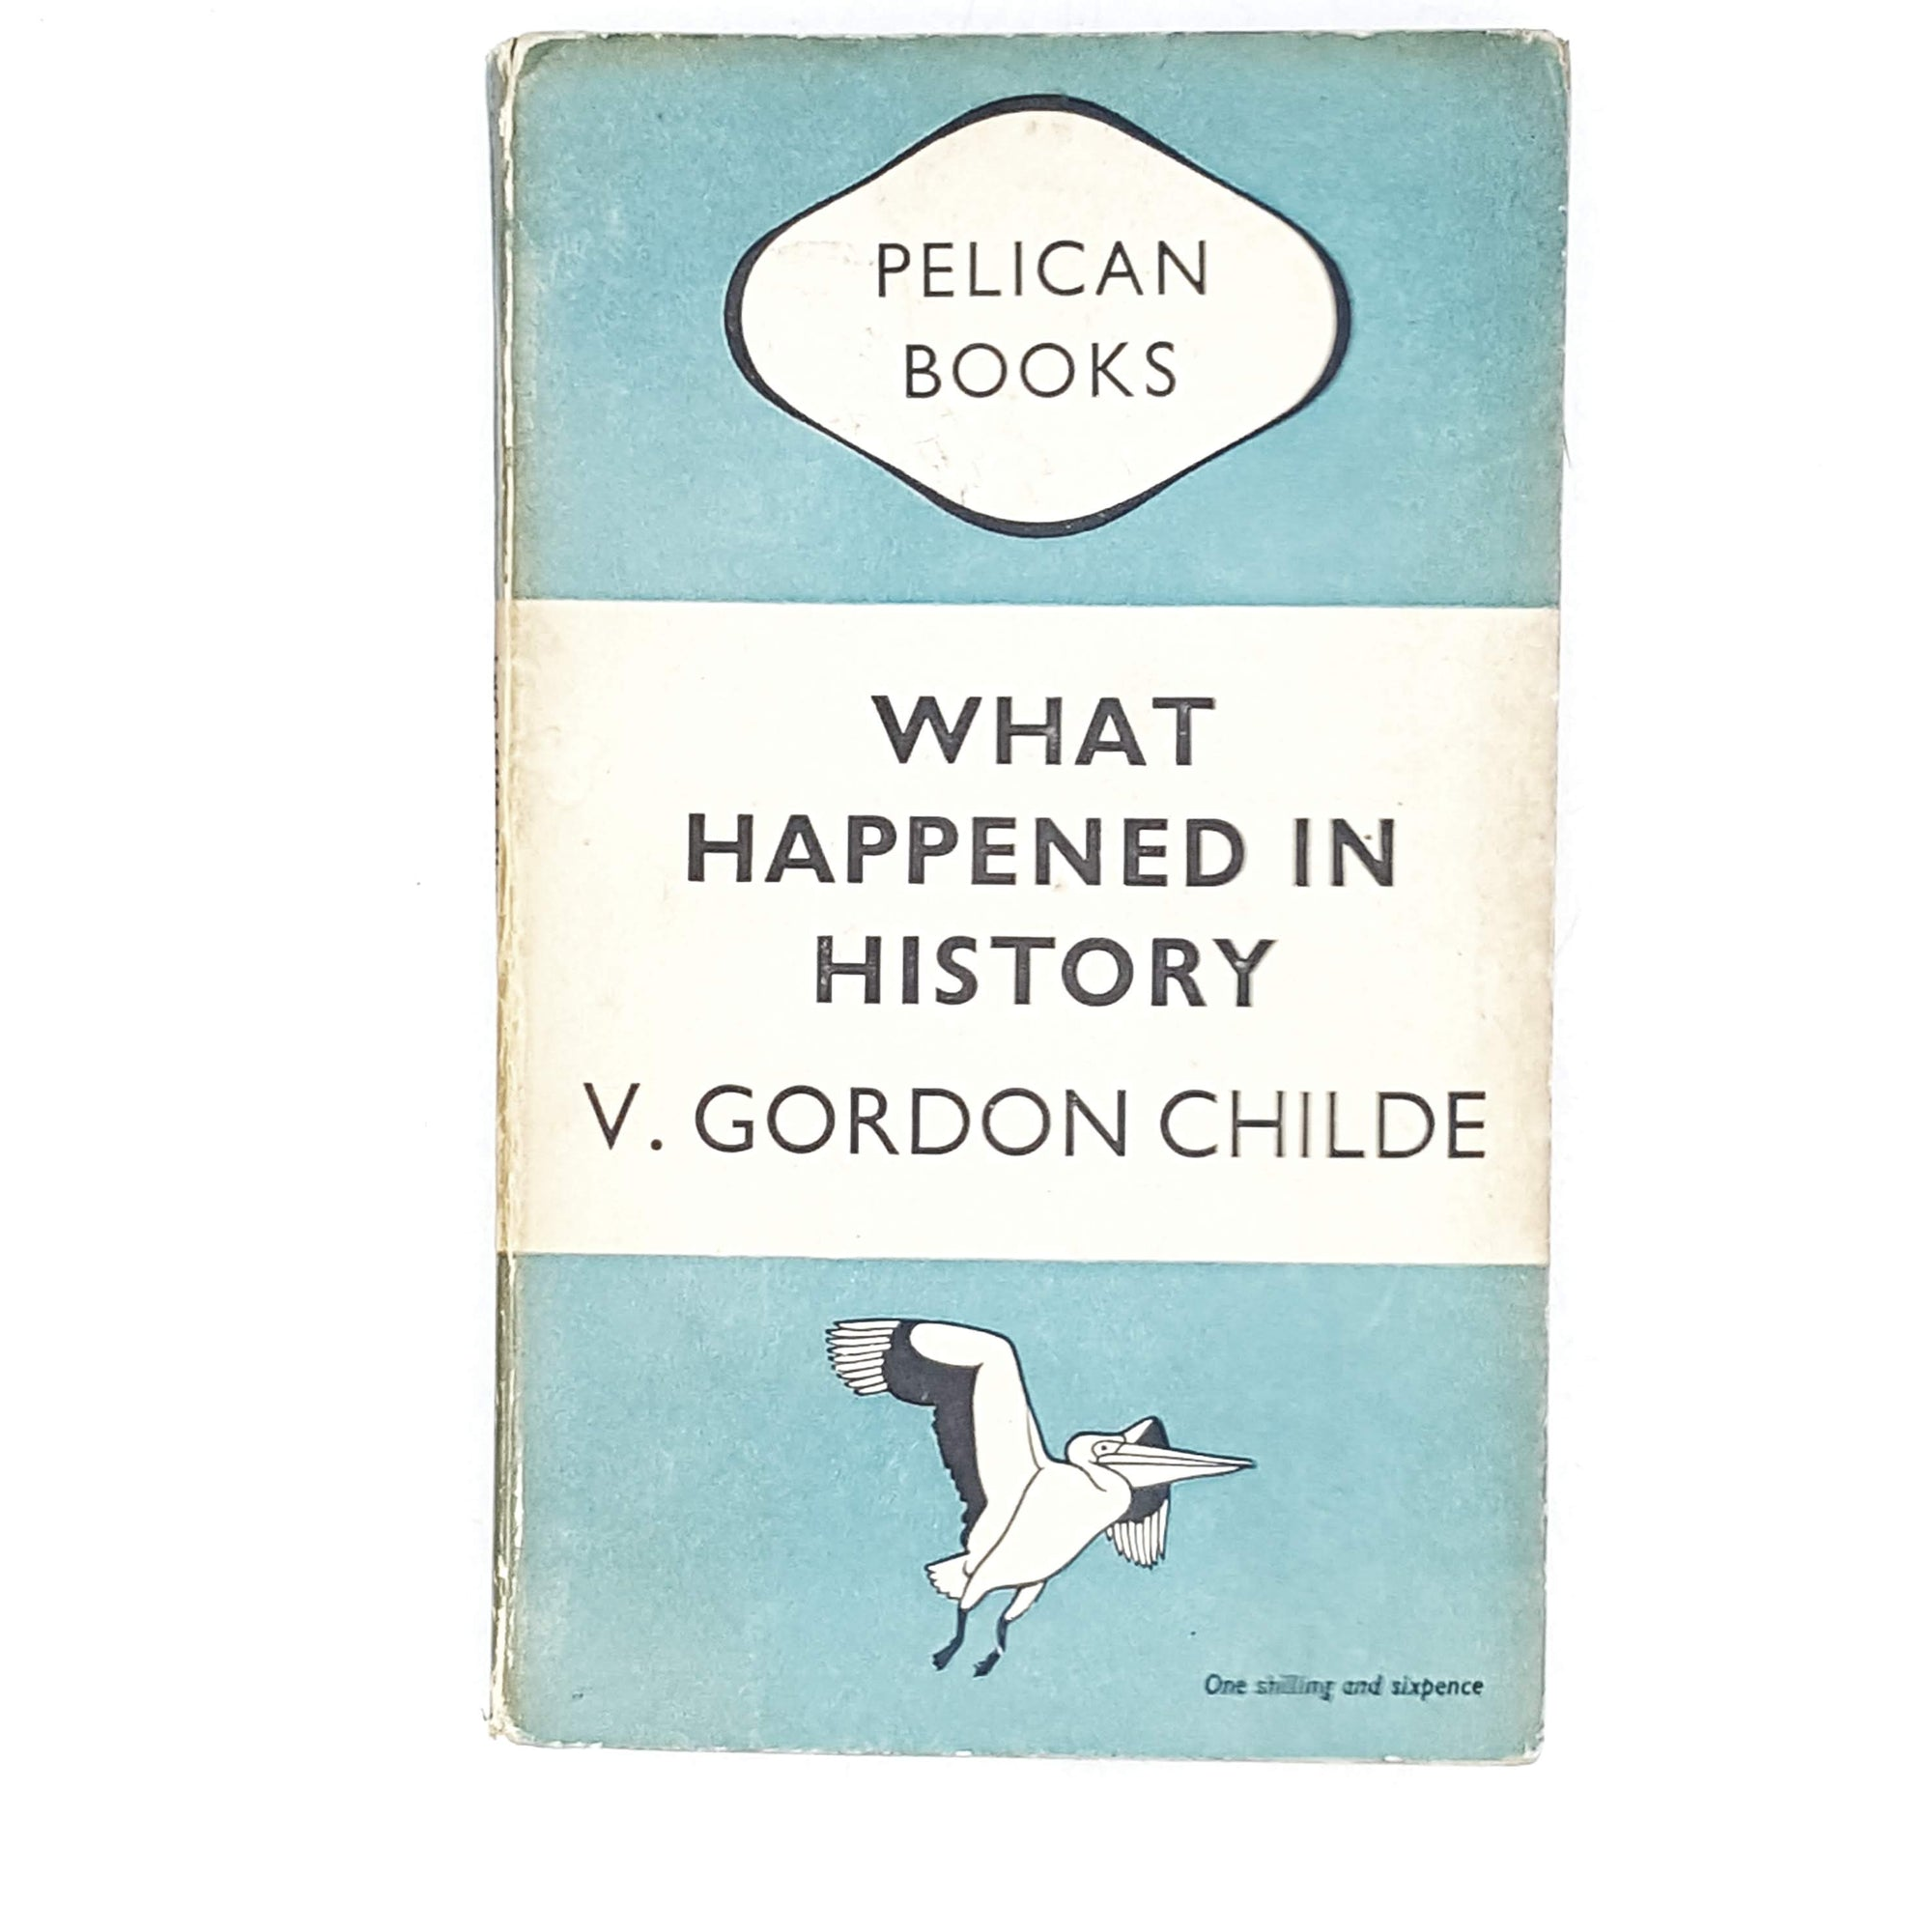 Vintage Pelican: What Happened in History by V. Gordon Childe 1948